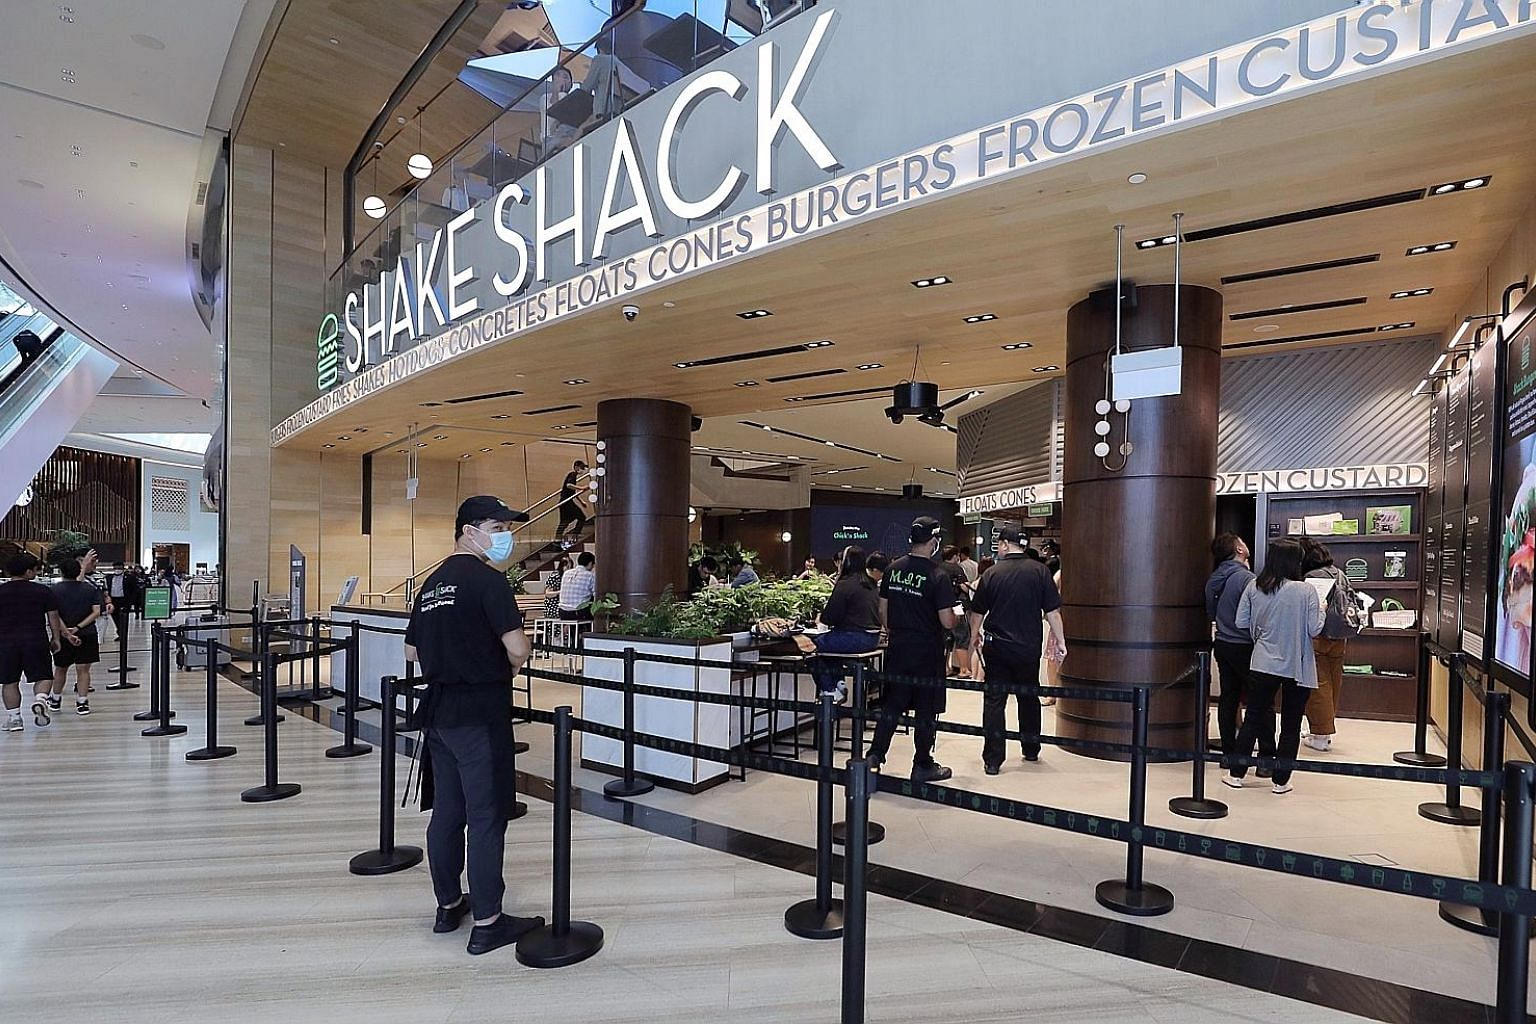 The near-empty queueing area at the Shake Shack burger outlet at Jewel Changi Airport last month. Fears about the coronavirus outbreak have prompted many people to stay away from crowded public places, and food businesses have taken a huge hit. Econo